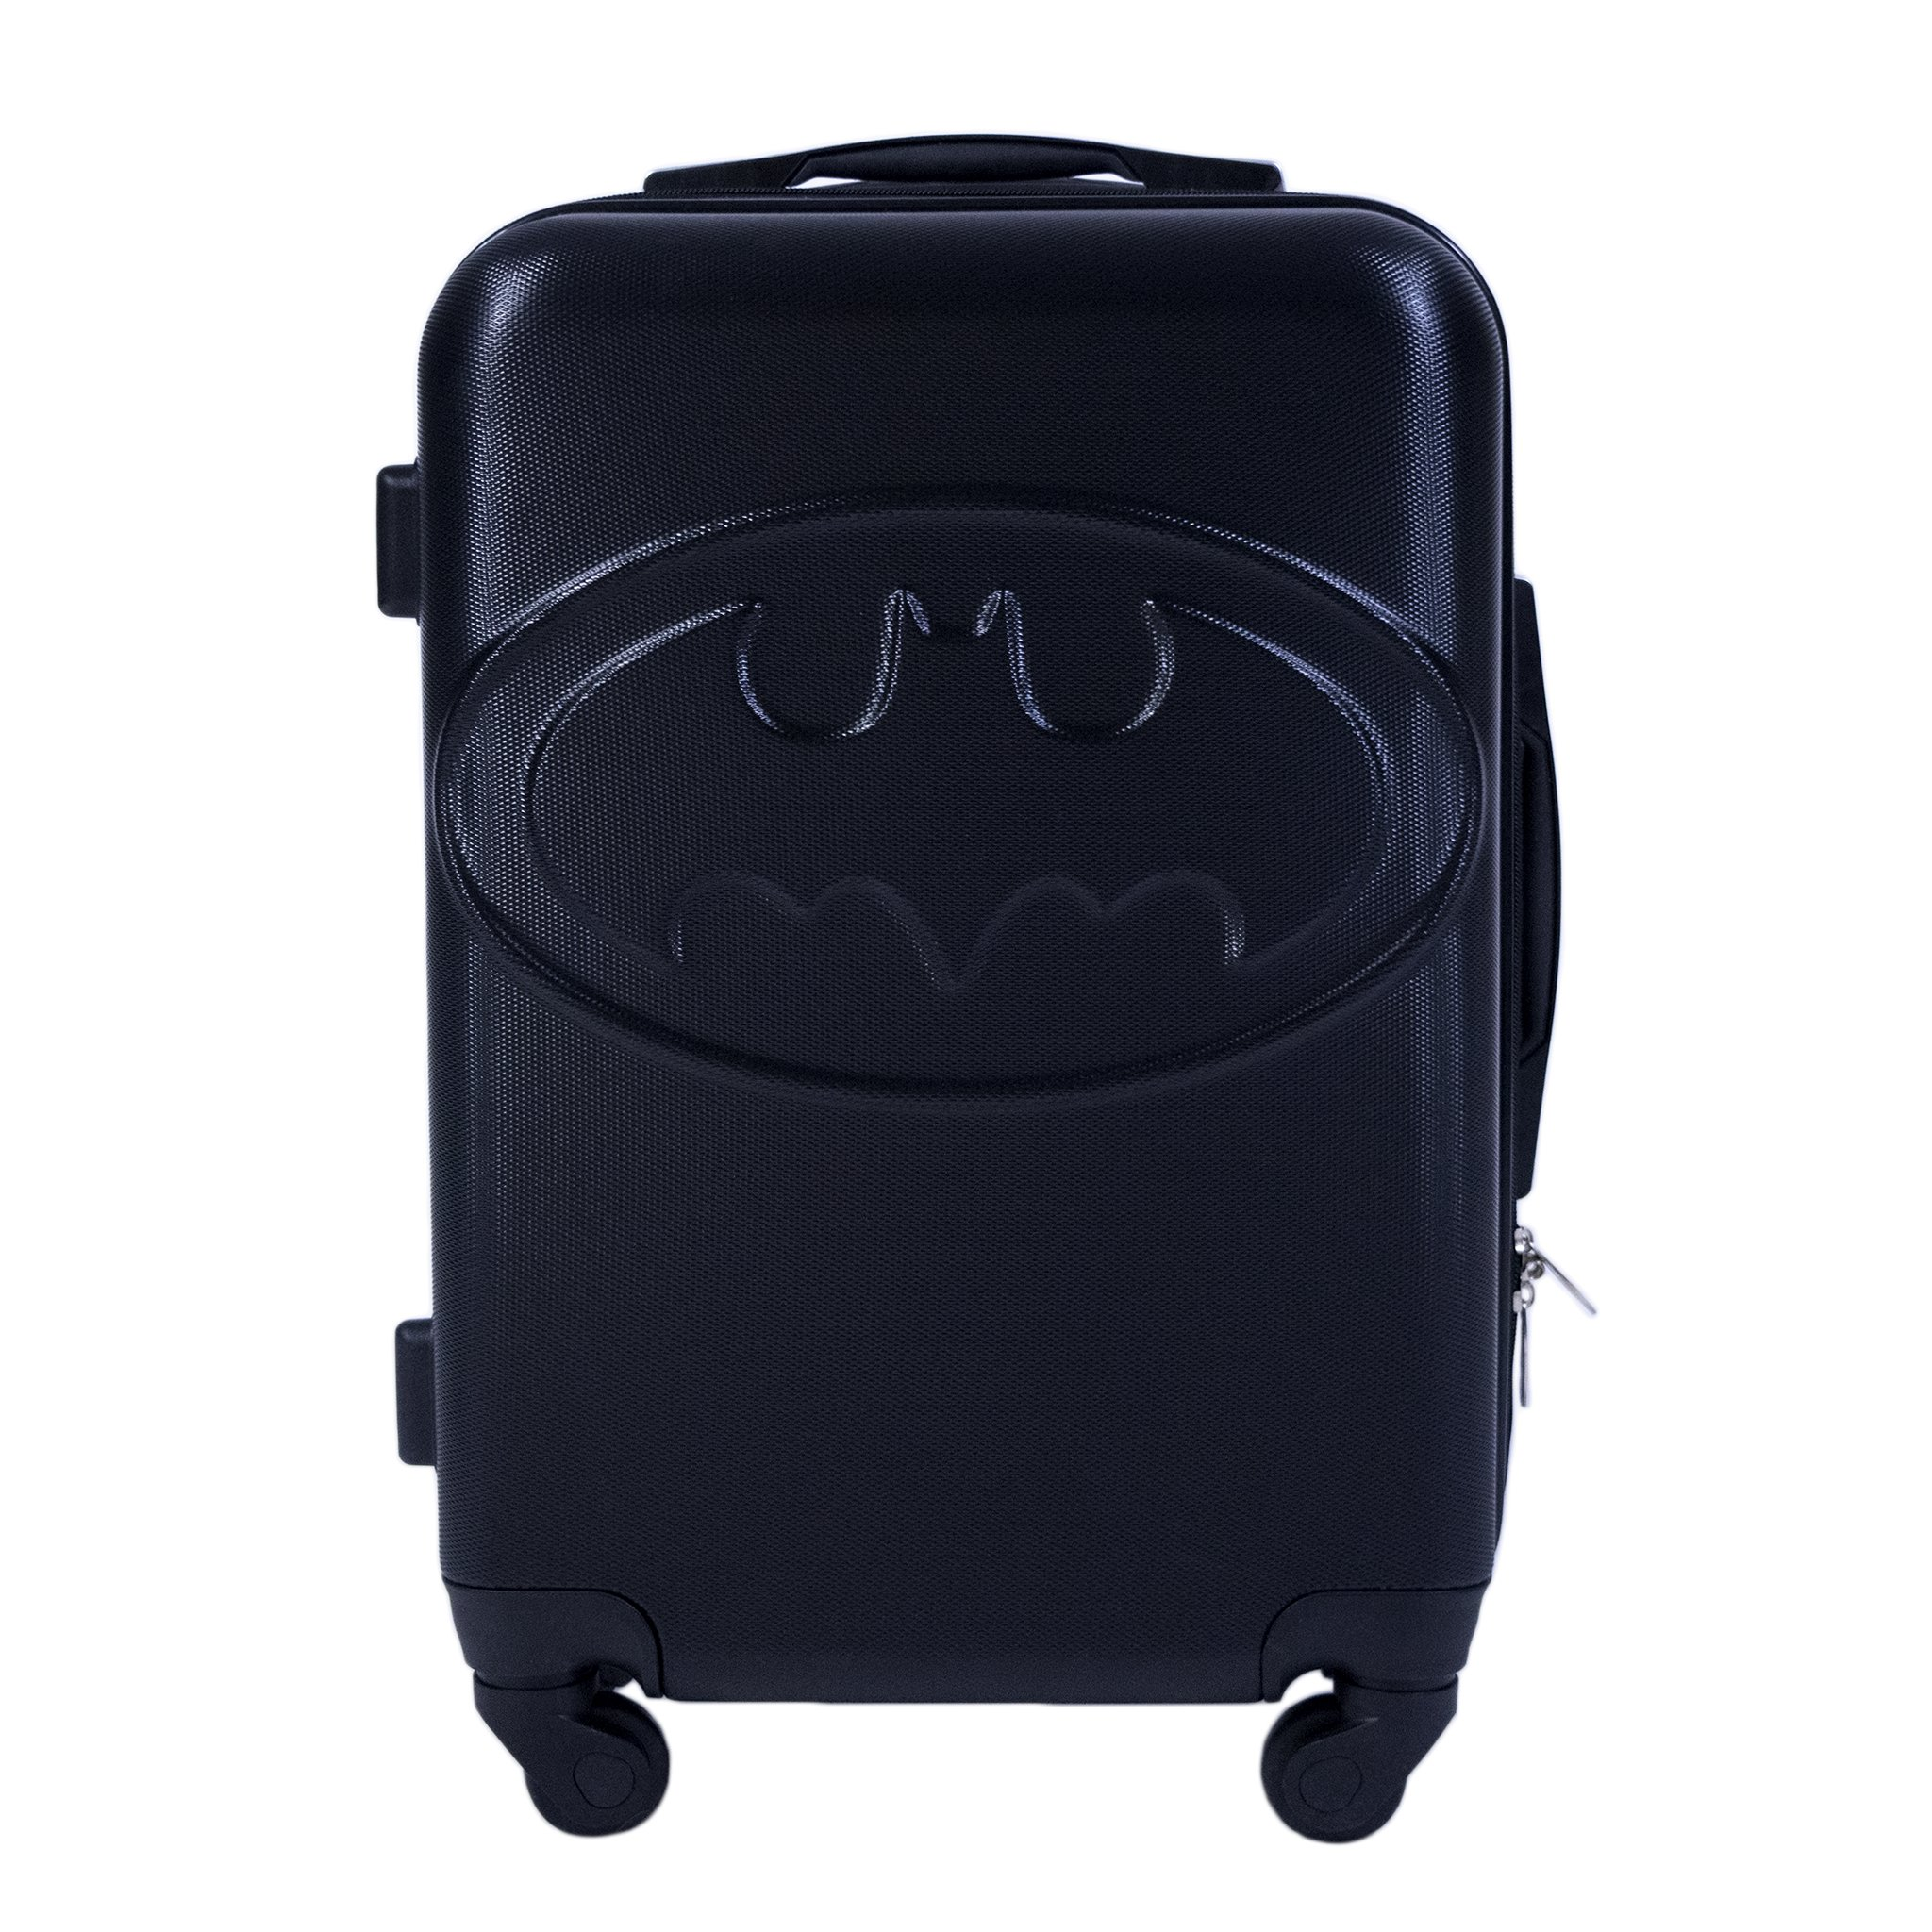 Batman 211n Hardsided Luggage Spinner, Black by Ful (Image #1)